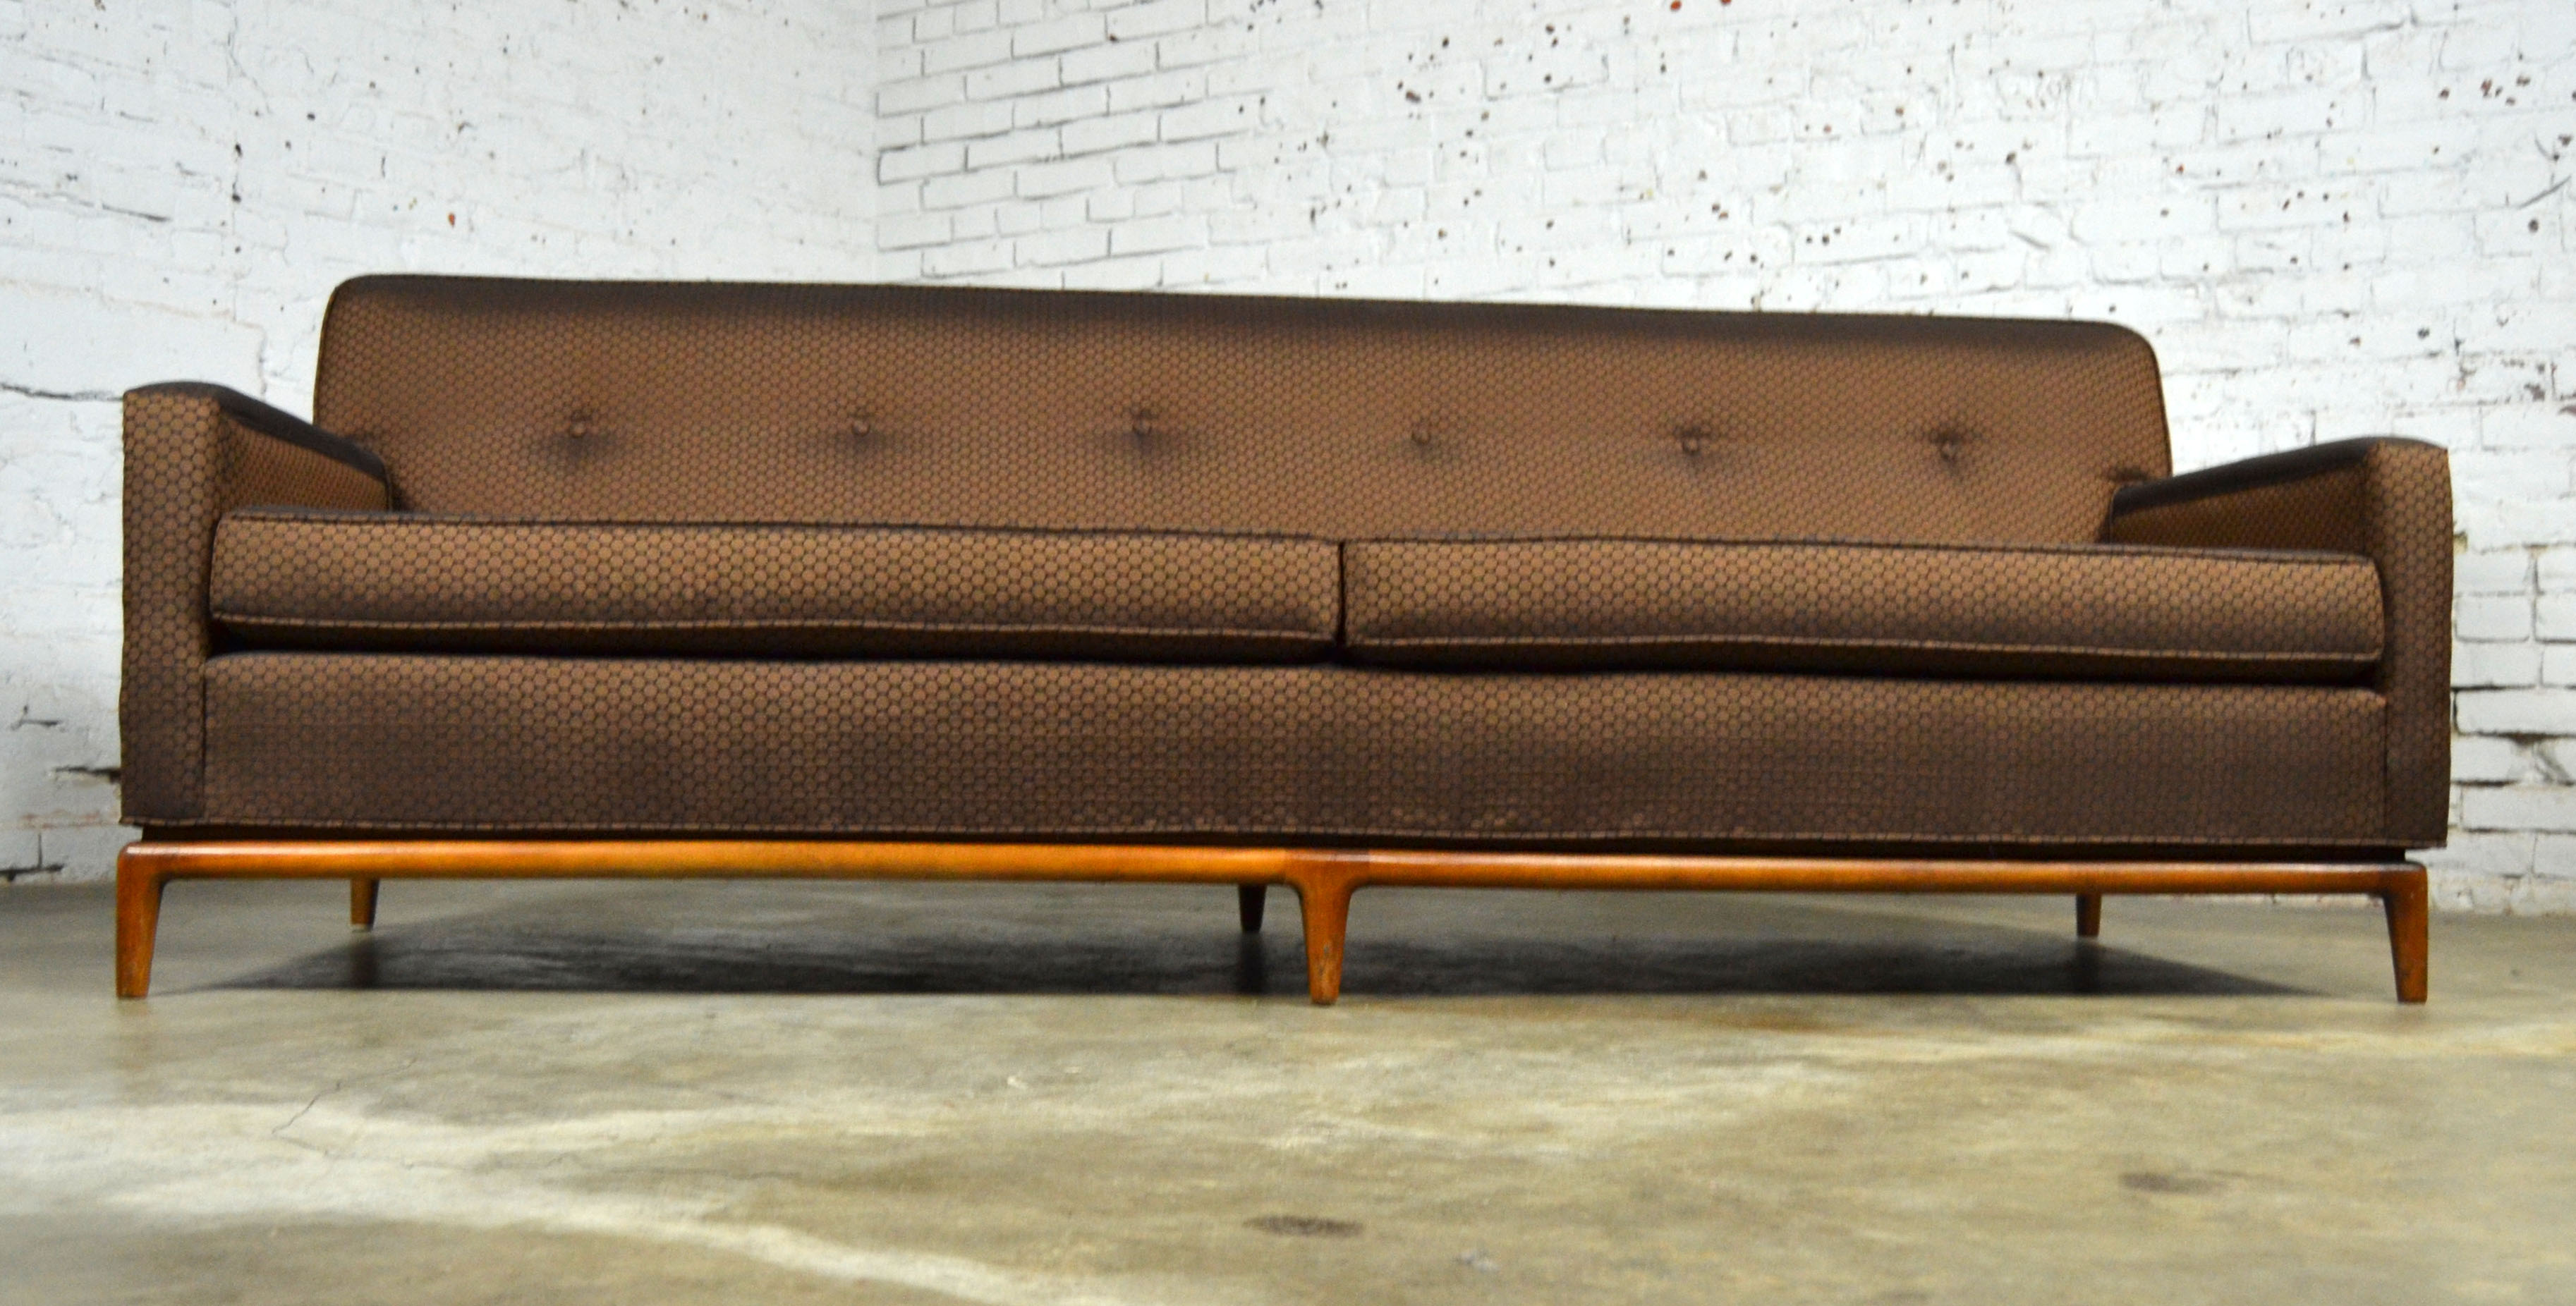 With Its Tufted Tight Back And Beautiful Walnut Base With Six Legs, This  Mid